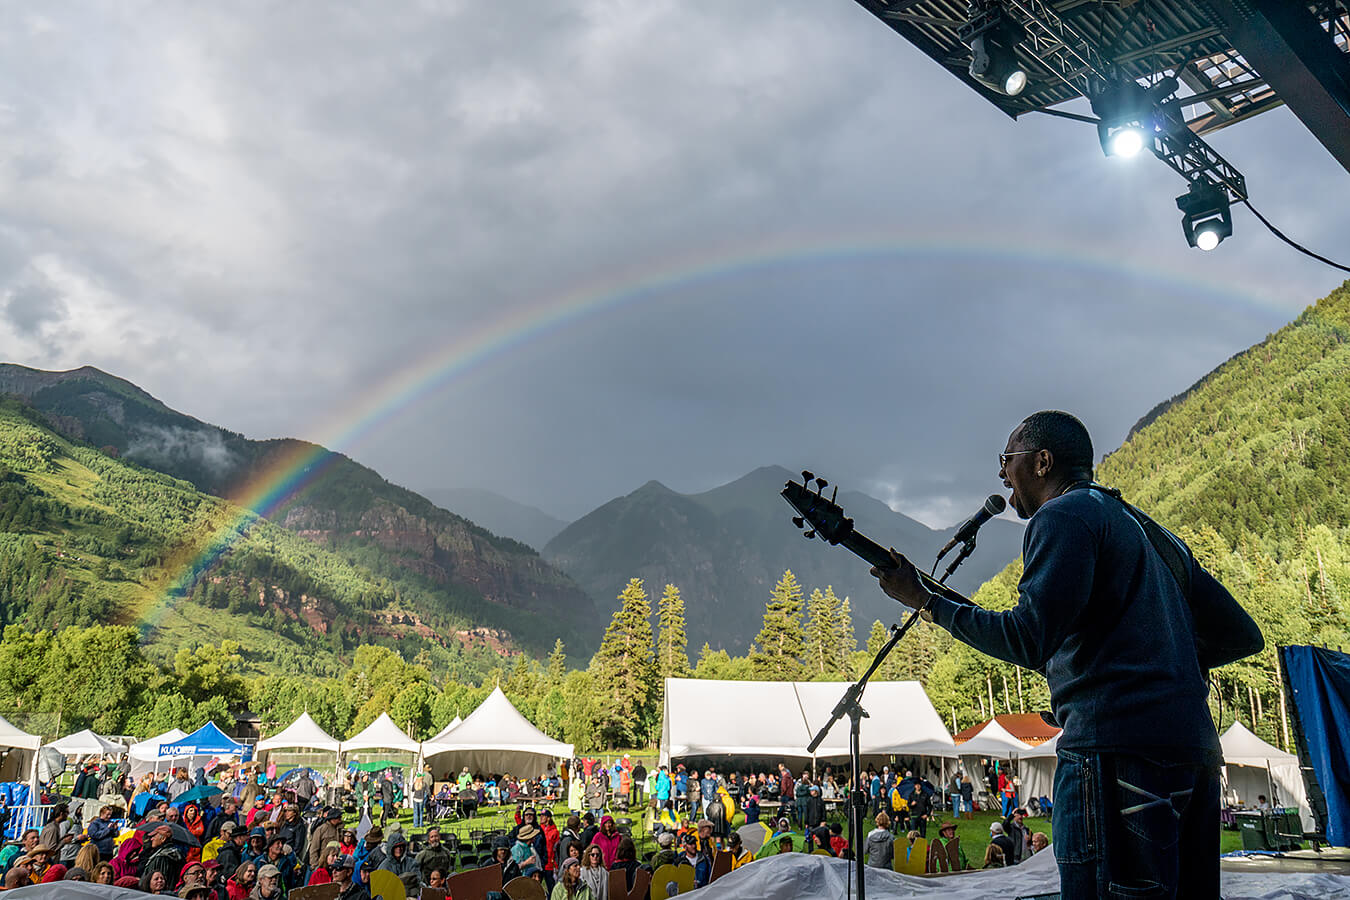 9 Coloradical Mountain Festivals You Need to Attend This Summer